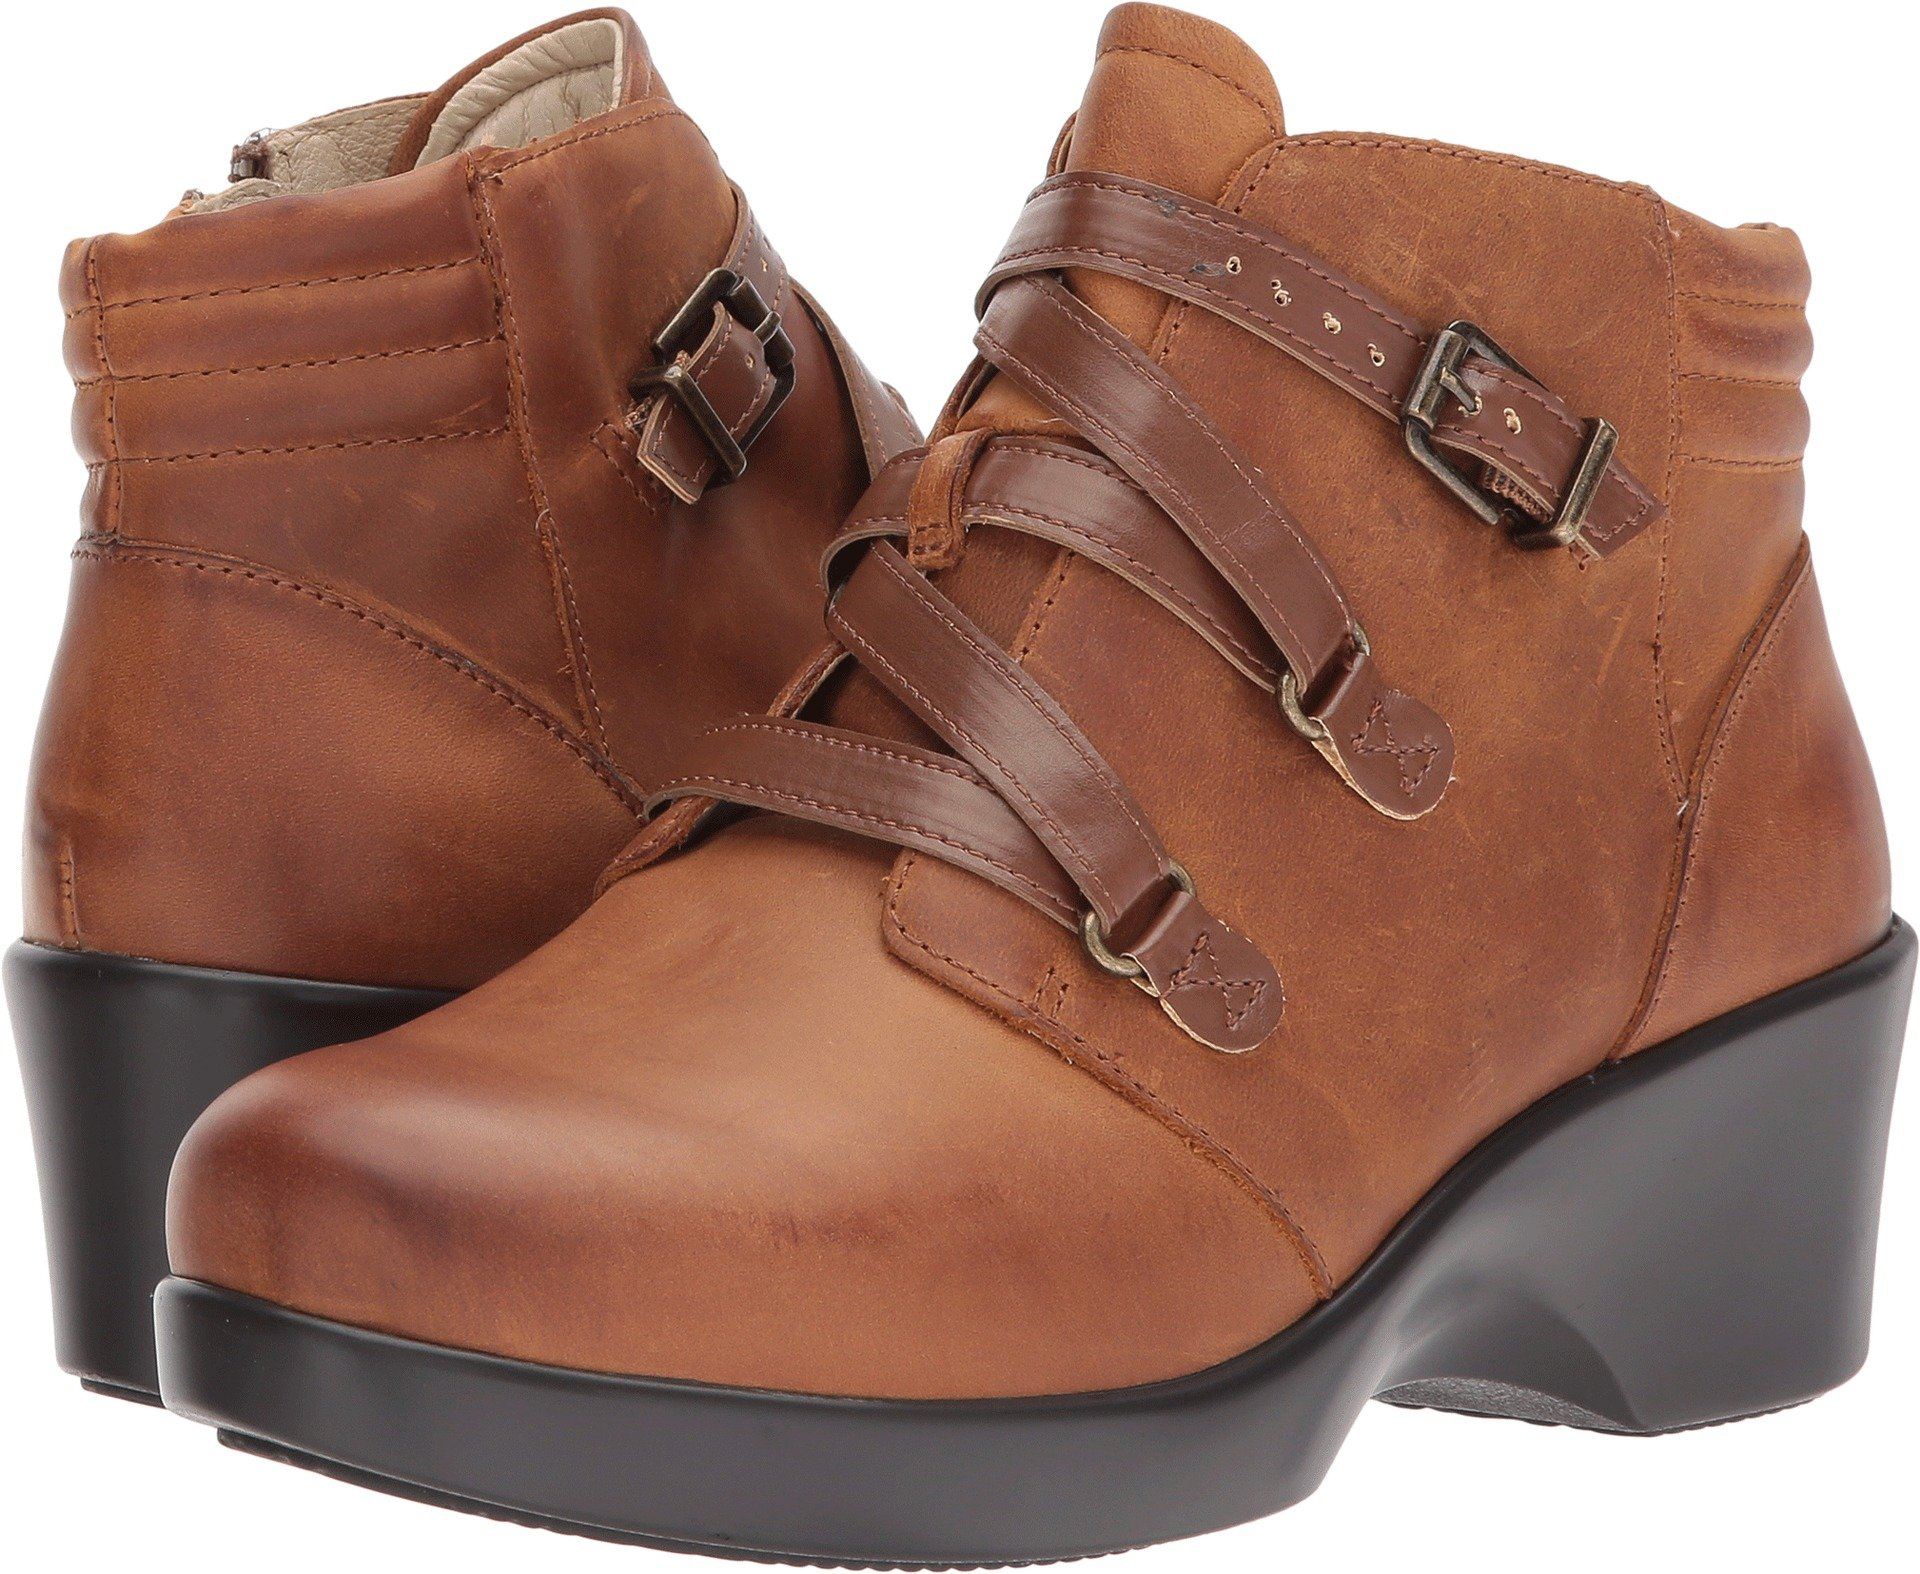 Alegria Womens Ankle Walnut 6 6 5